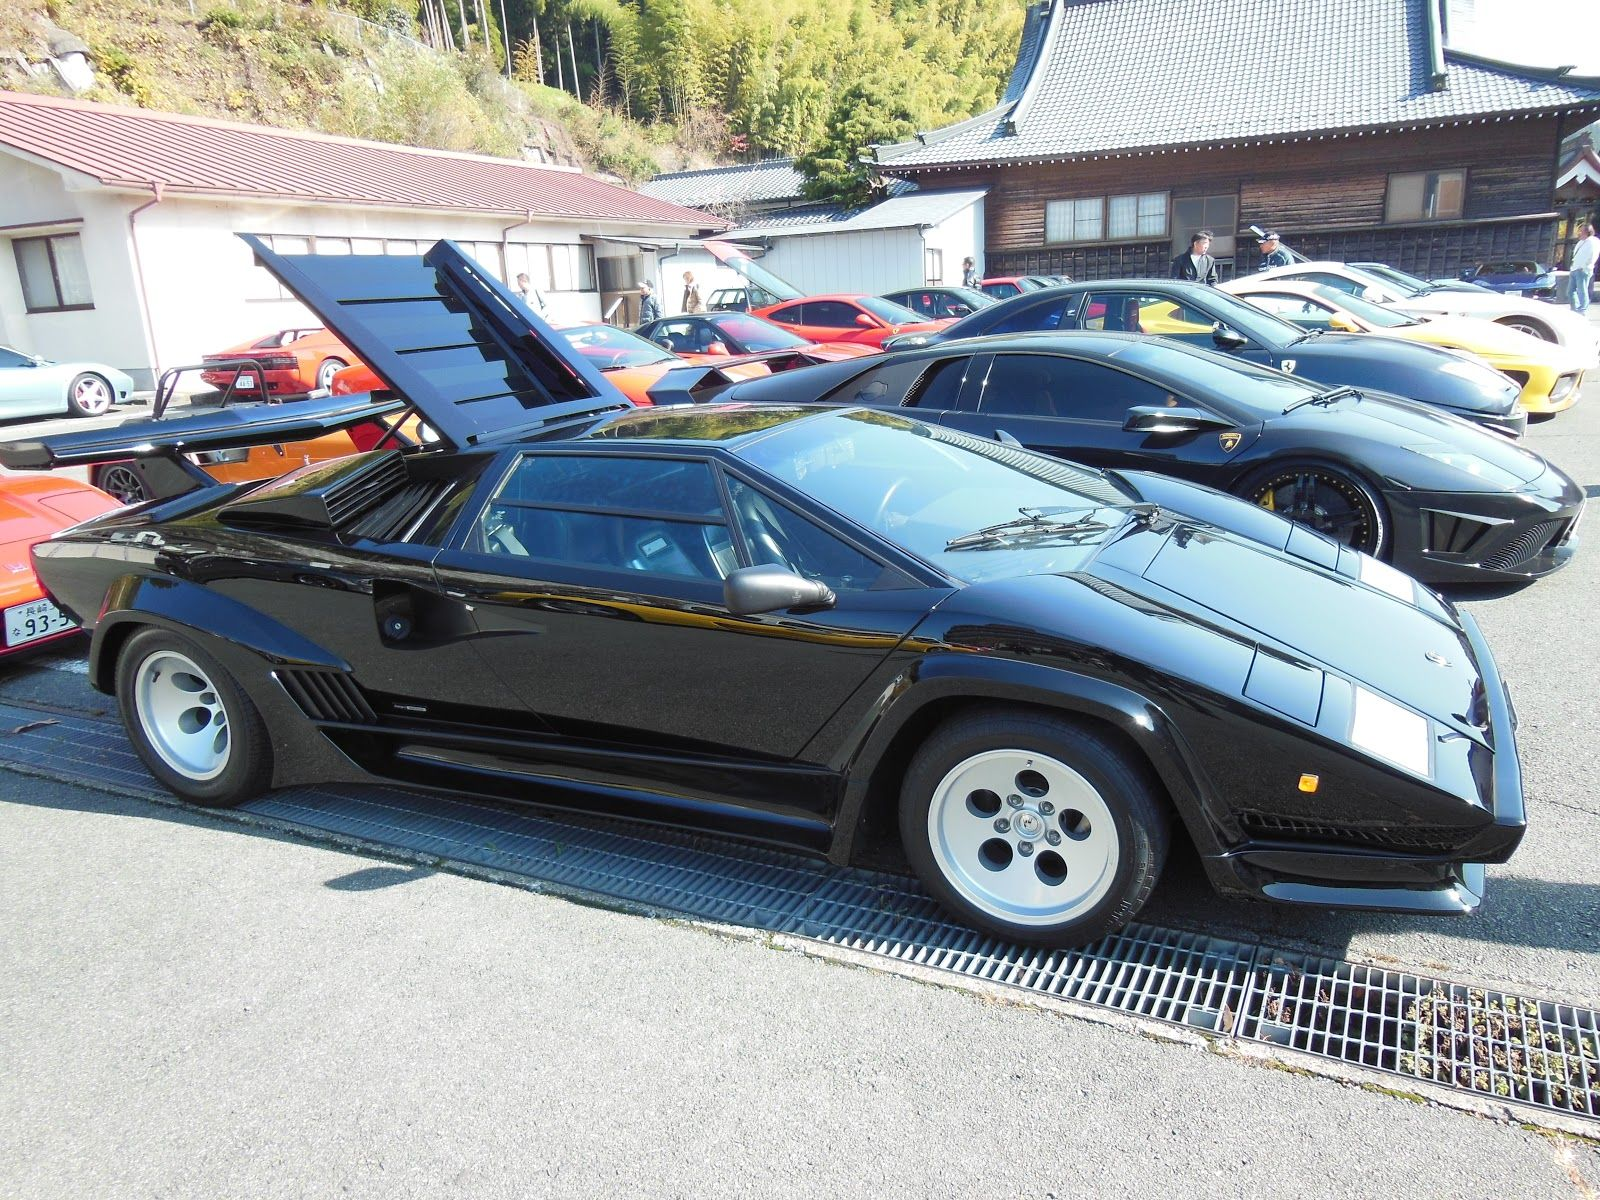 Fpazu02: 11月 2012 | Countach ! The roots of supercar | Pinterest ...